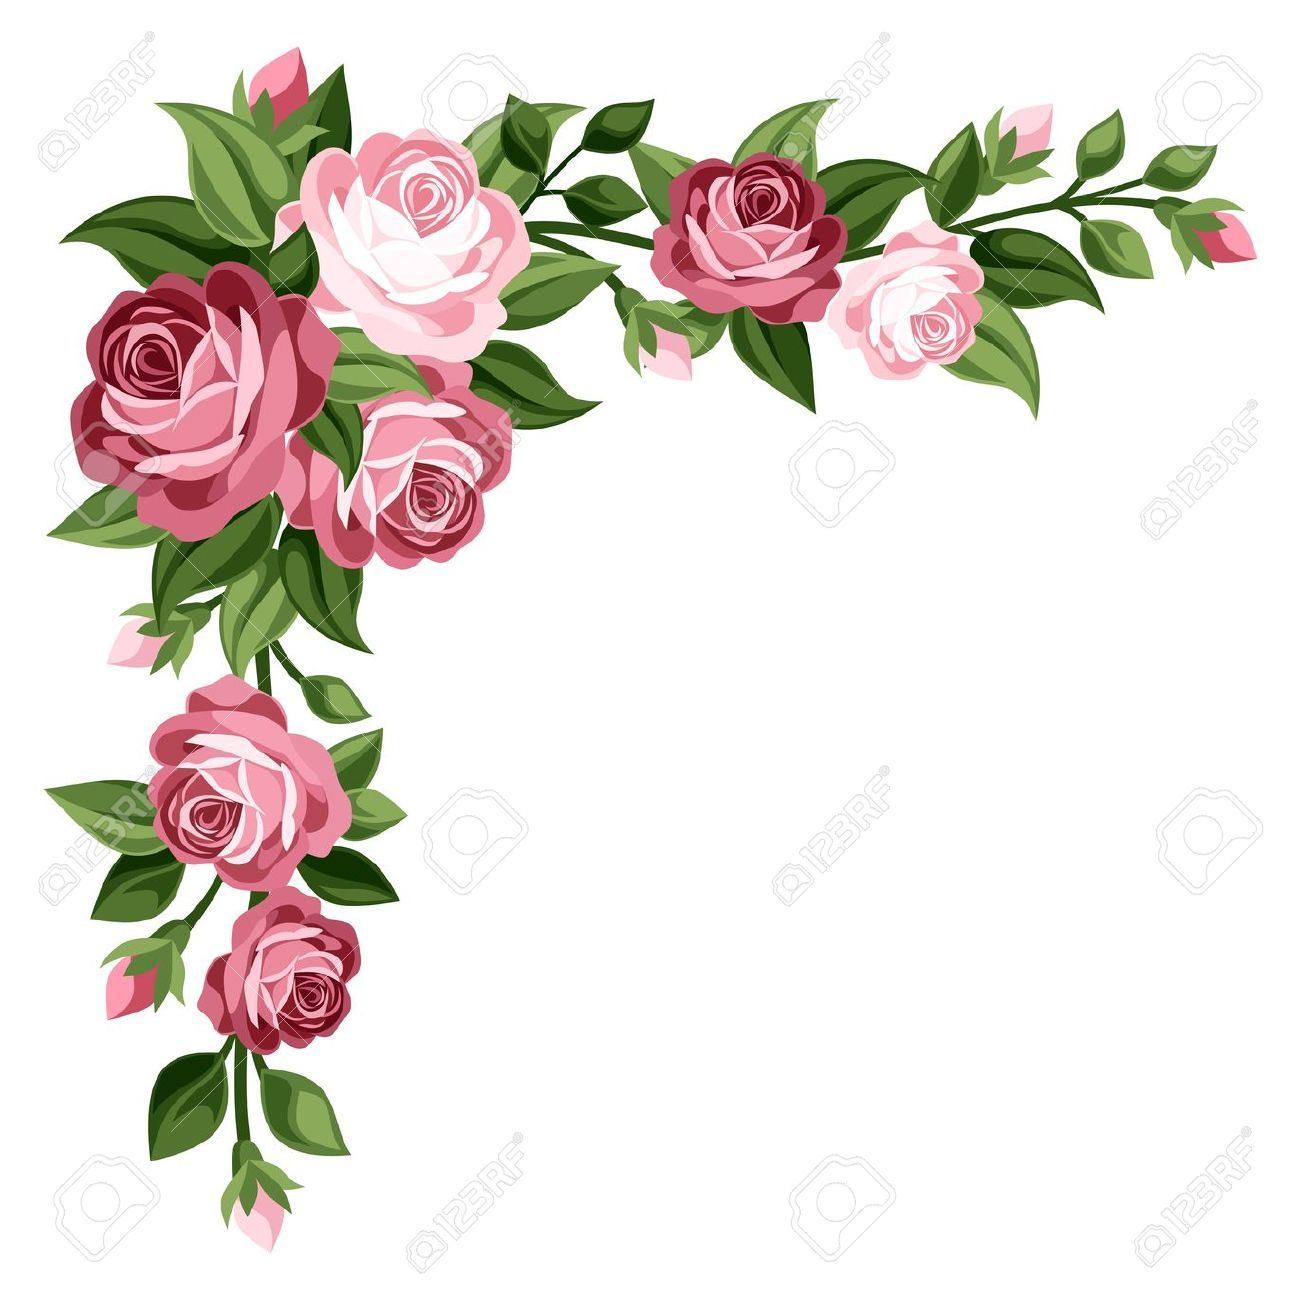 hight resolution of rose flower border clipart